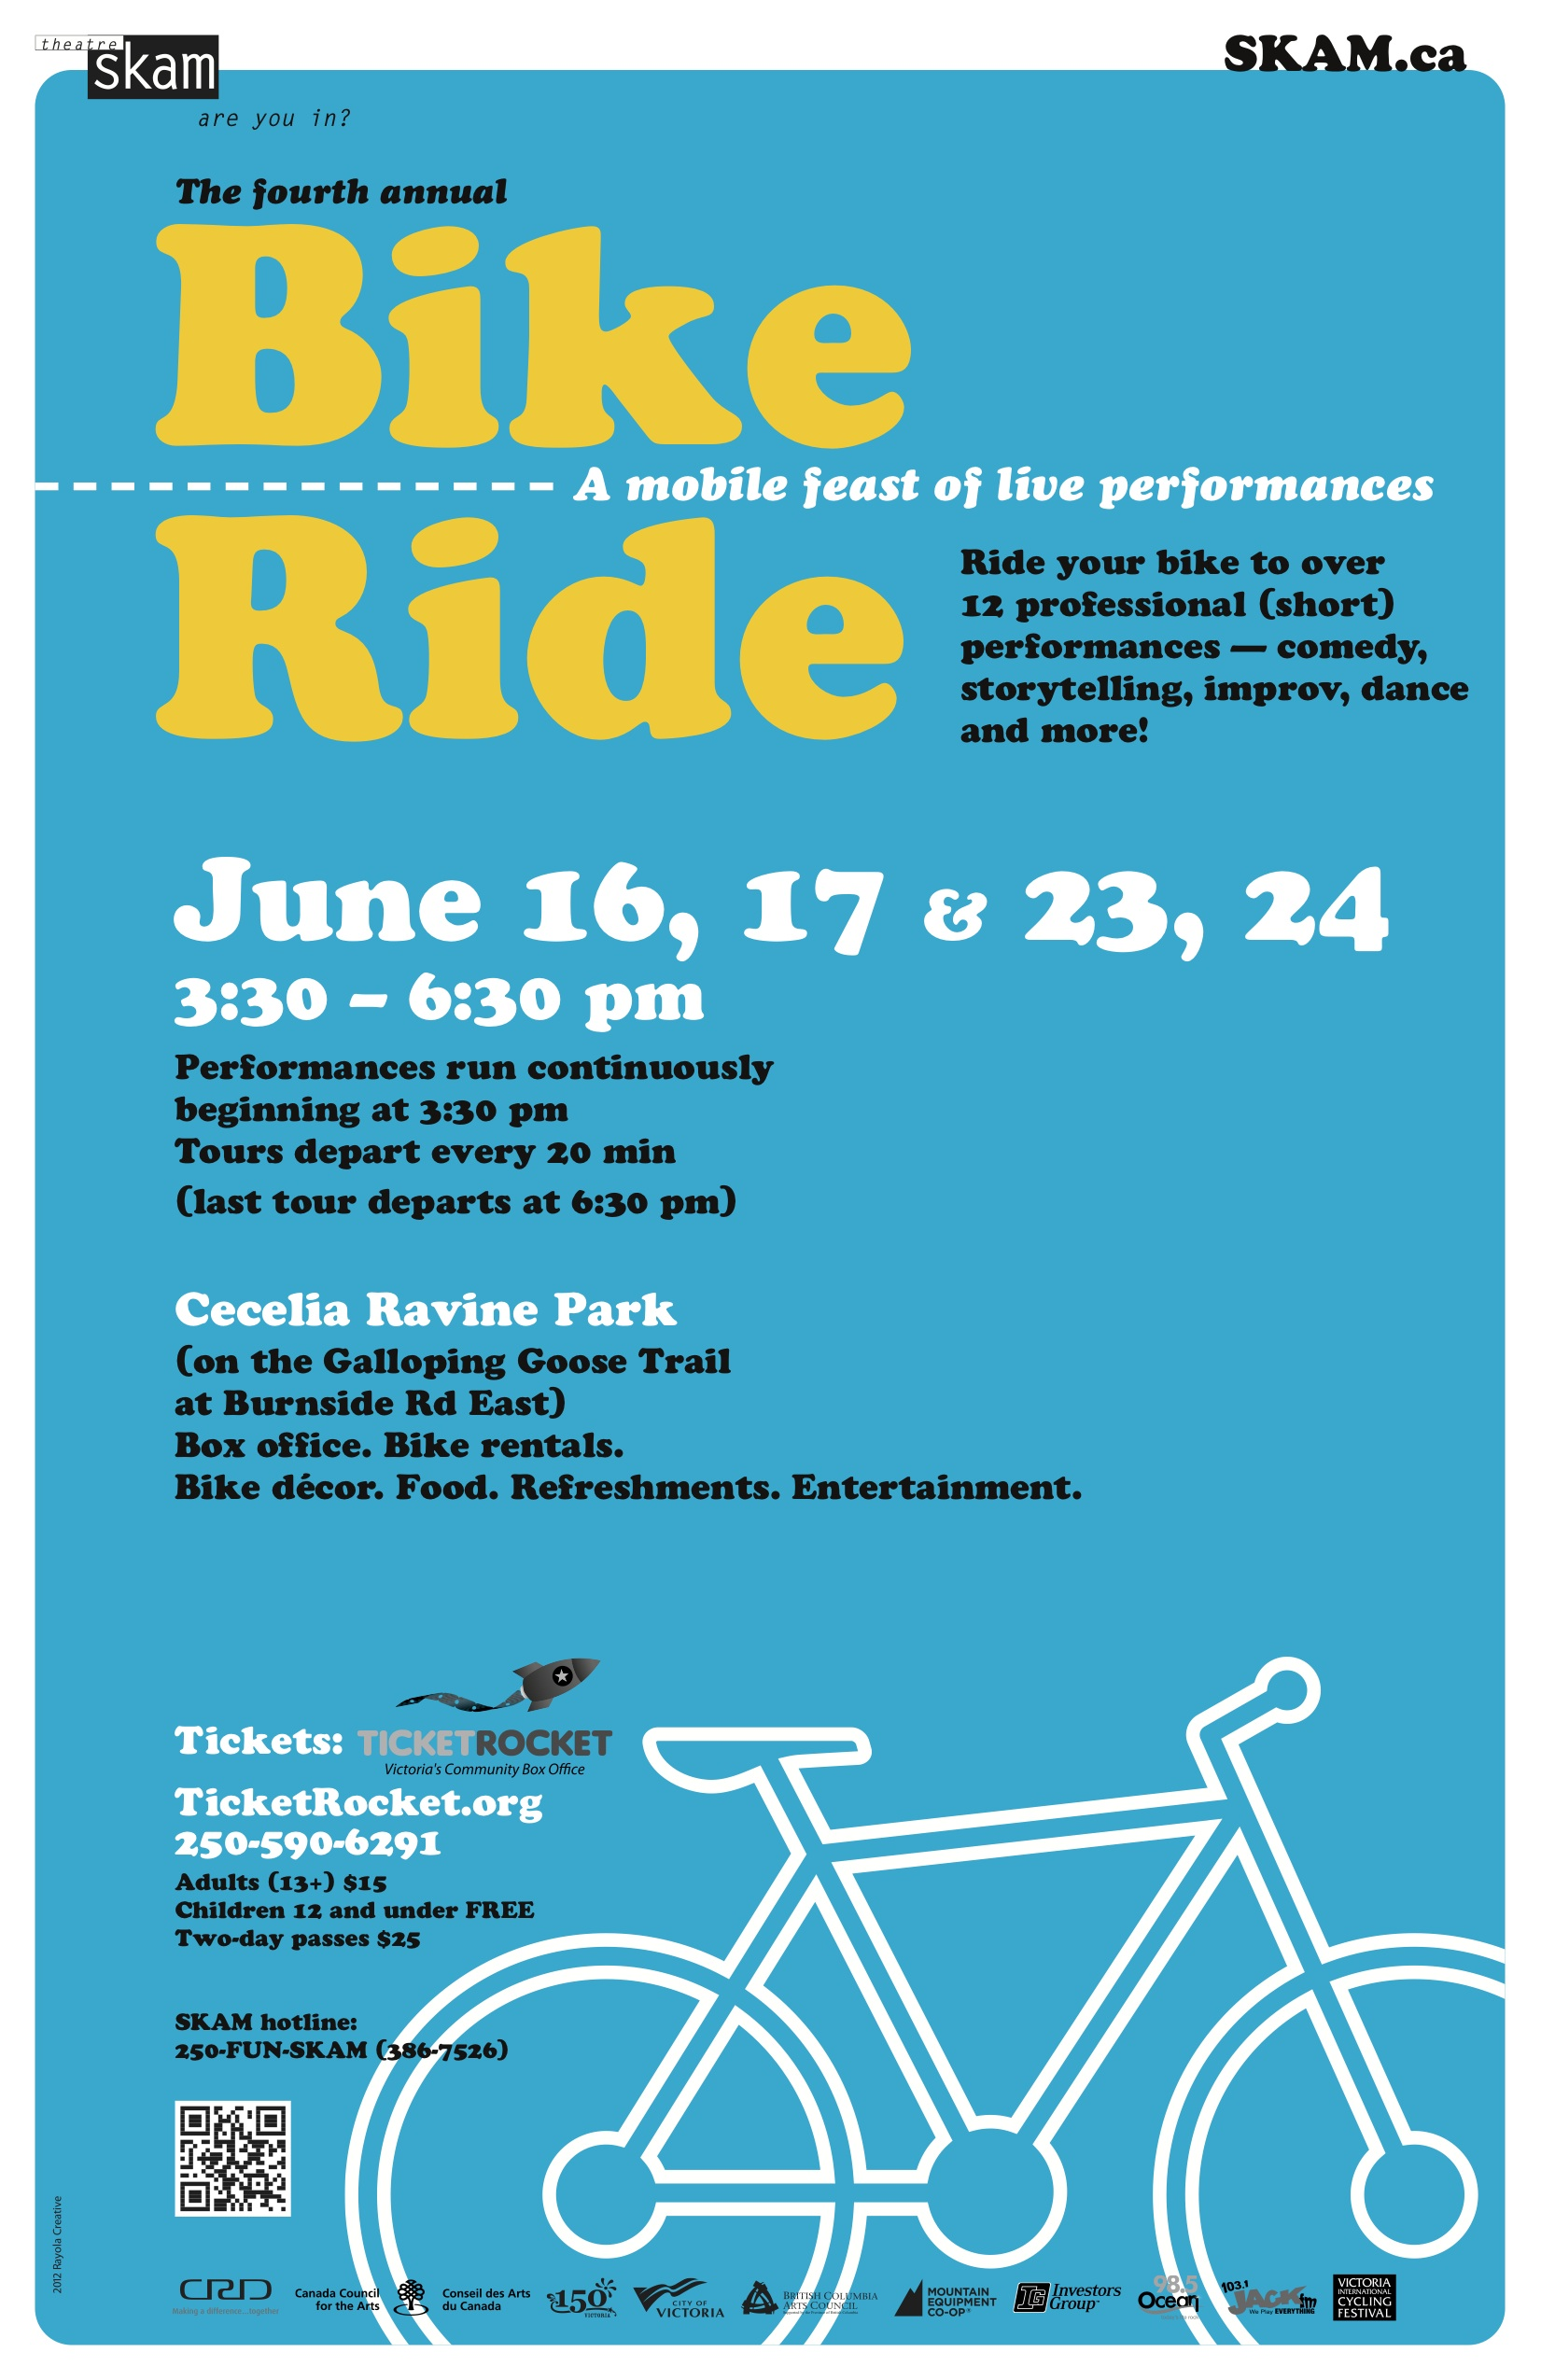 Theatre SKAM 2012 Bike Ride poster for Victoria BC